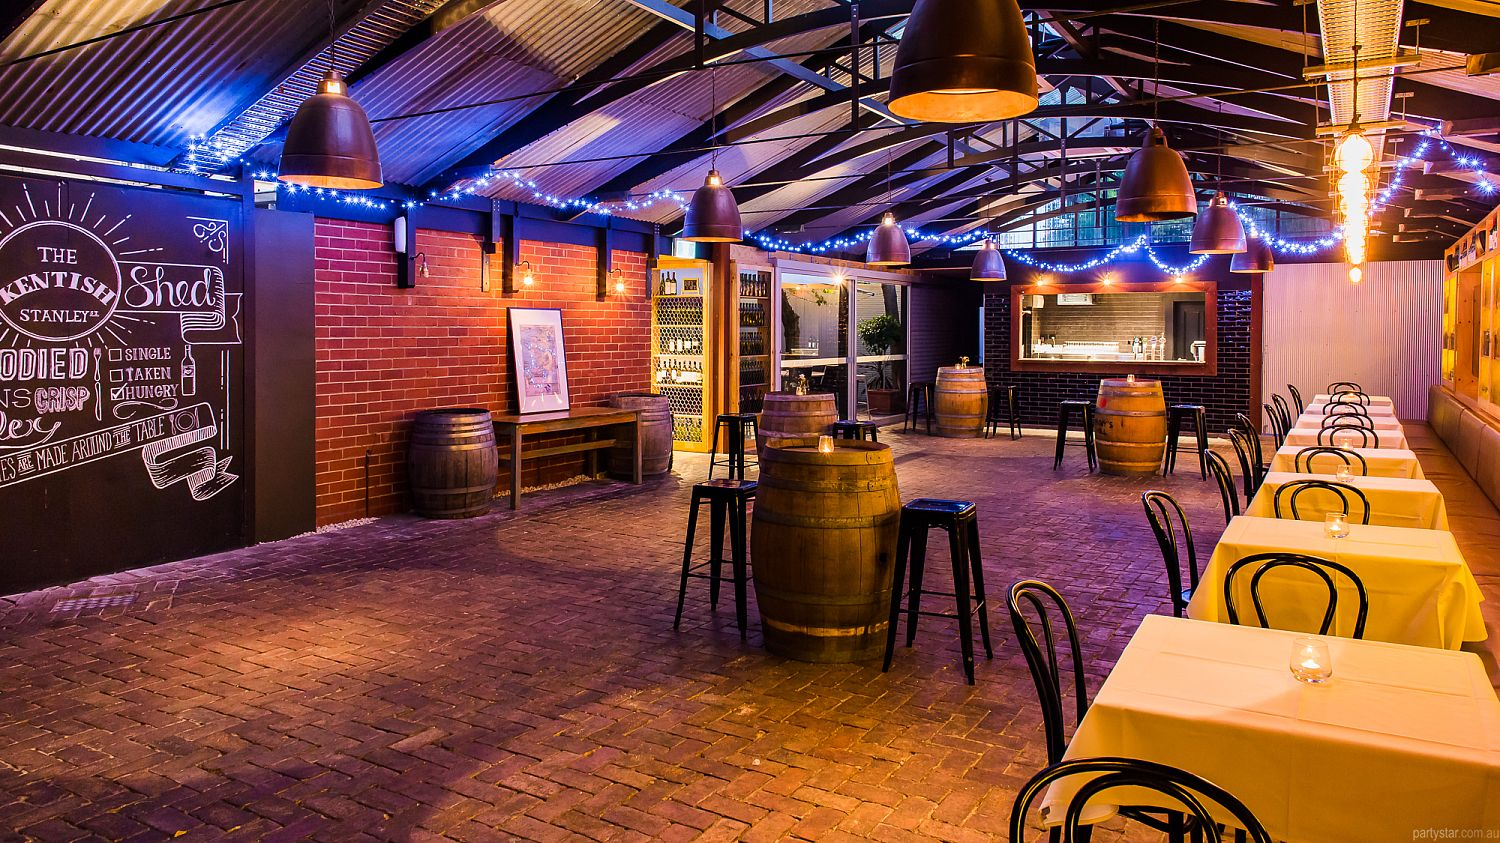 The Kentish Wine Shed In North Adelaide Adelaide Function Room Hire